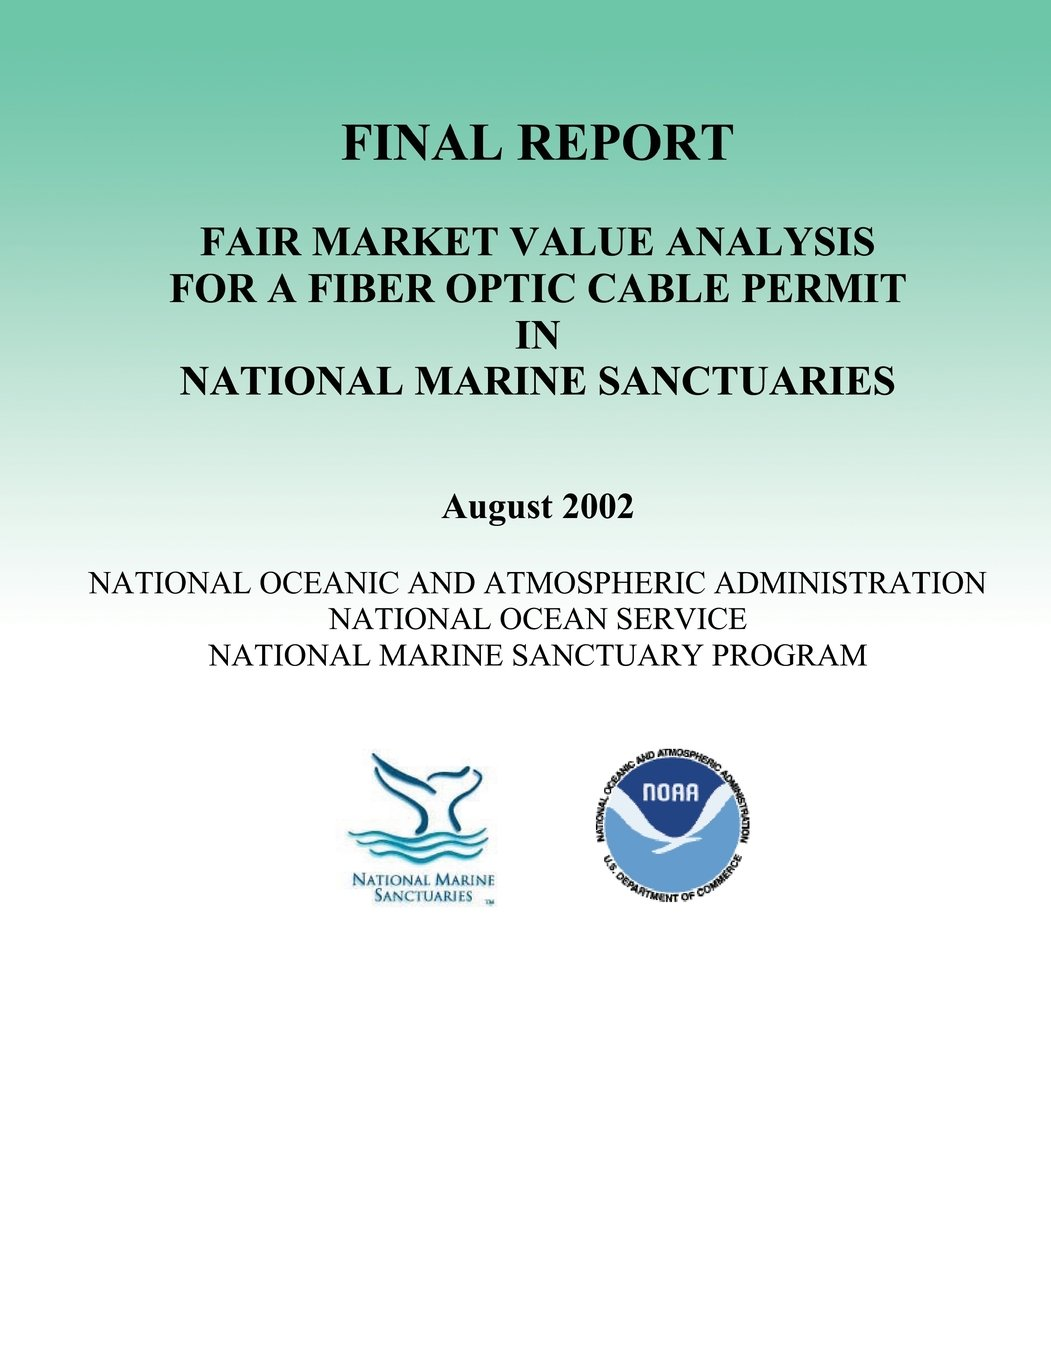 Download Fair Market Value Analysis for a Fiber Optic Cable Permit in National Marine Sanctuaries-Final Report ebook